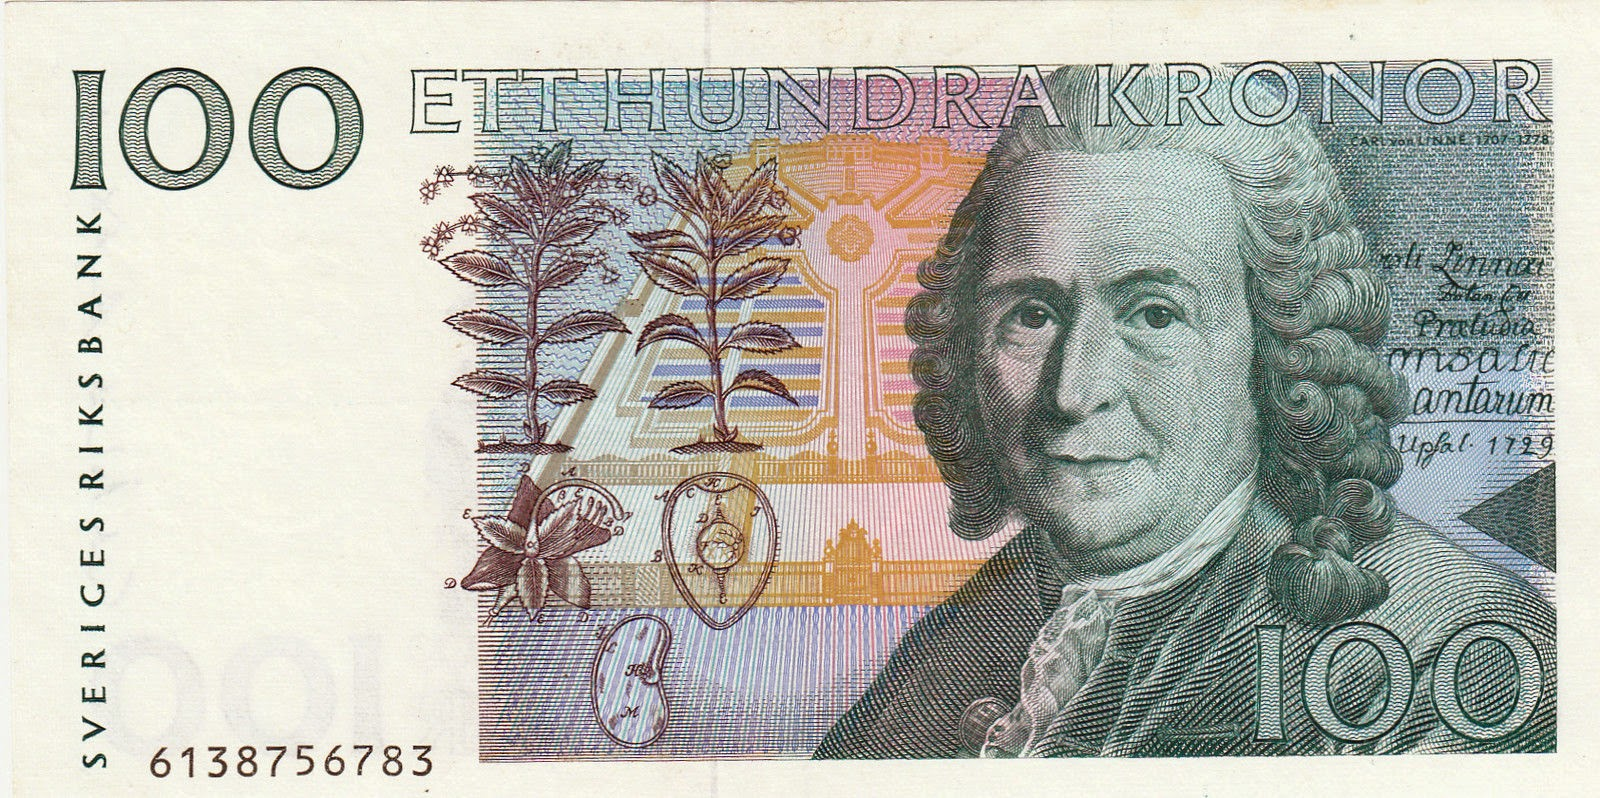 Sweden Currency 100 Swedish Krona banknote, Carl Linnaeus